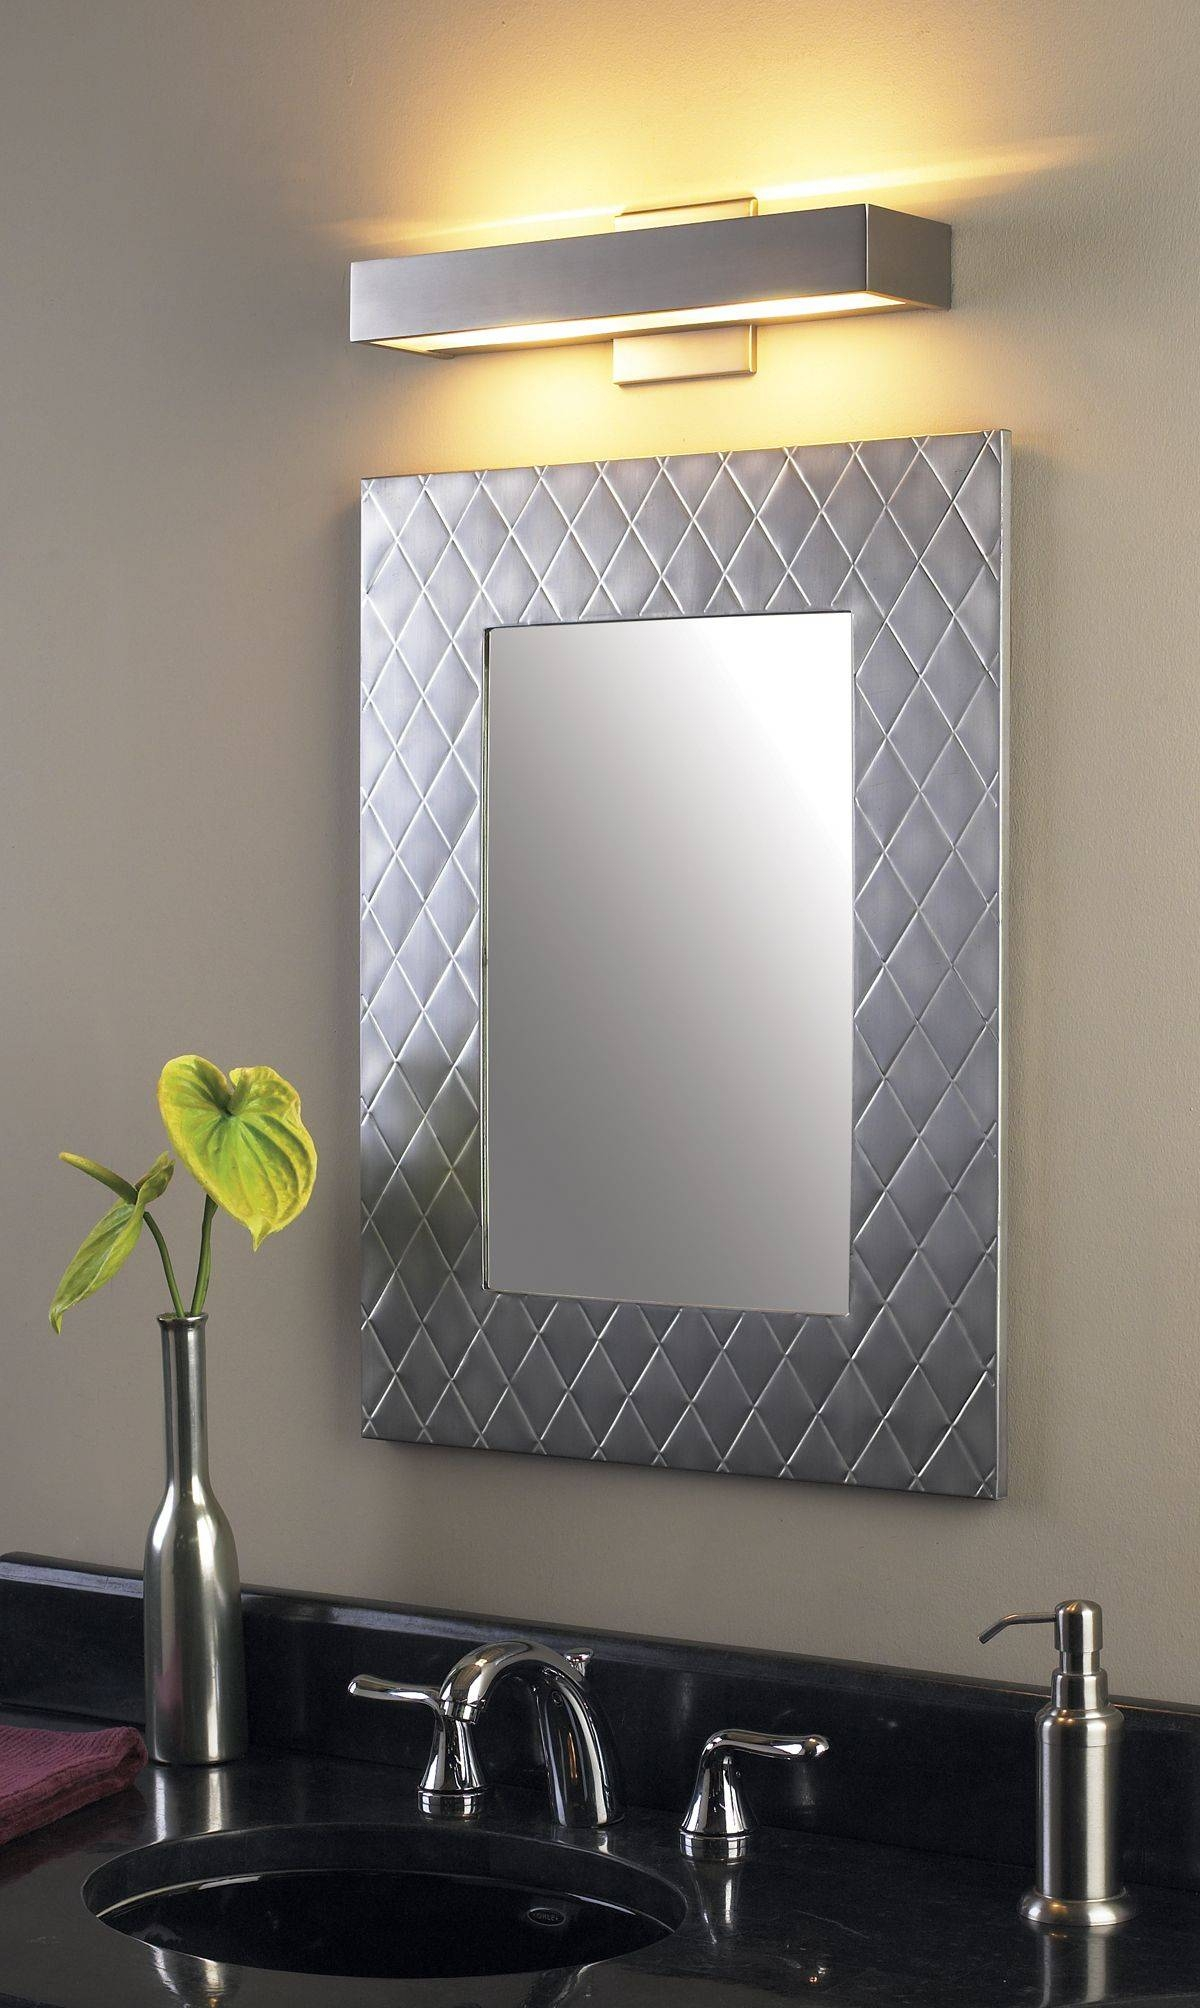 Led Lights For Mirrors 22 Inspiring Style For Wall Lights Bathroom intended for Wall Light Mirrors (Image 8 of 15)